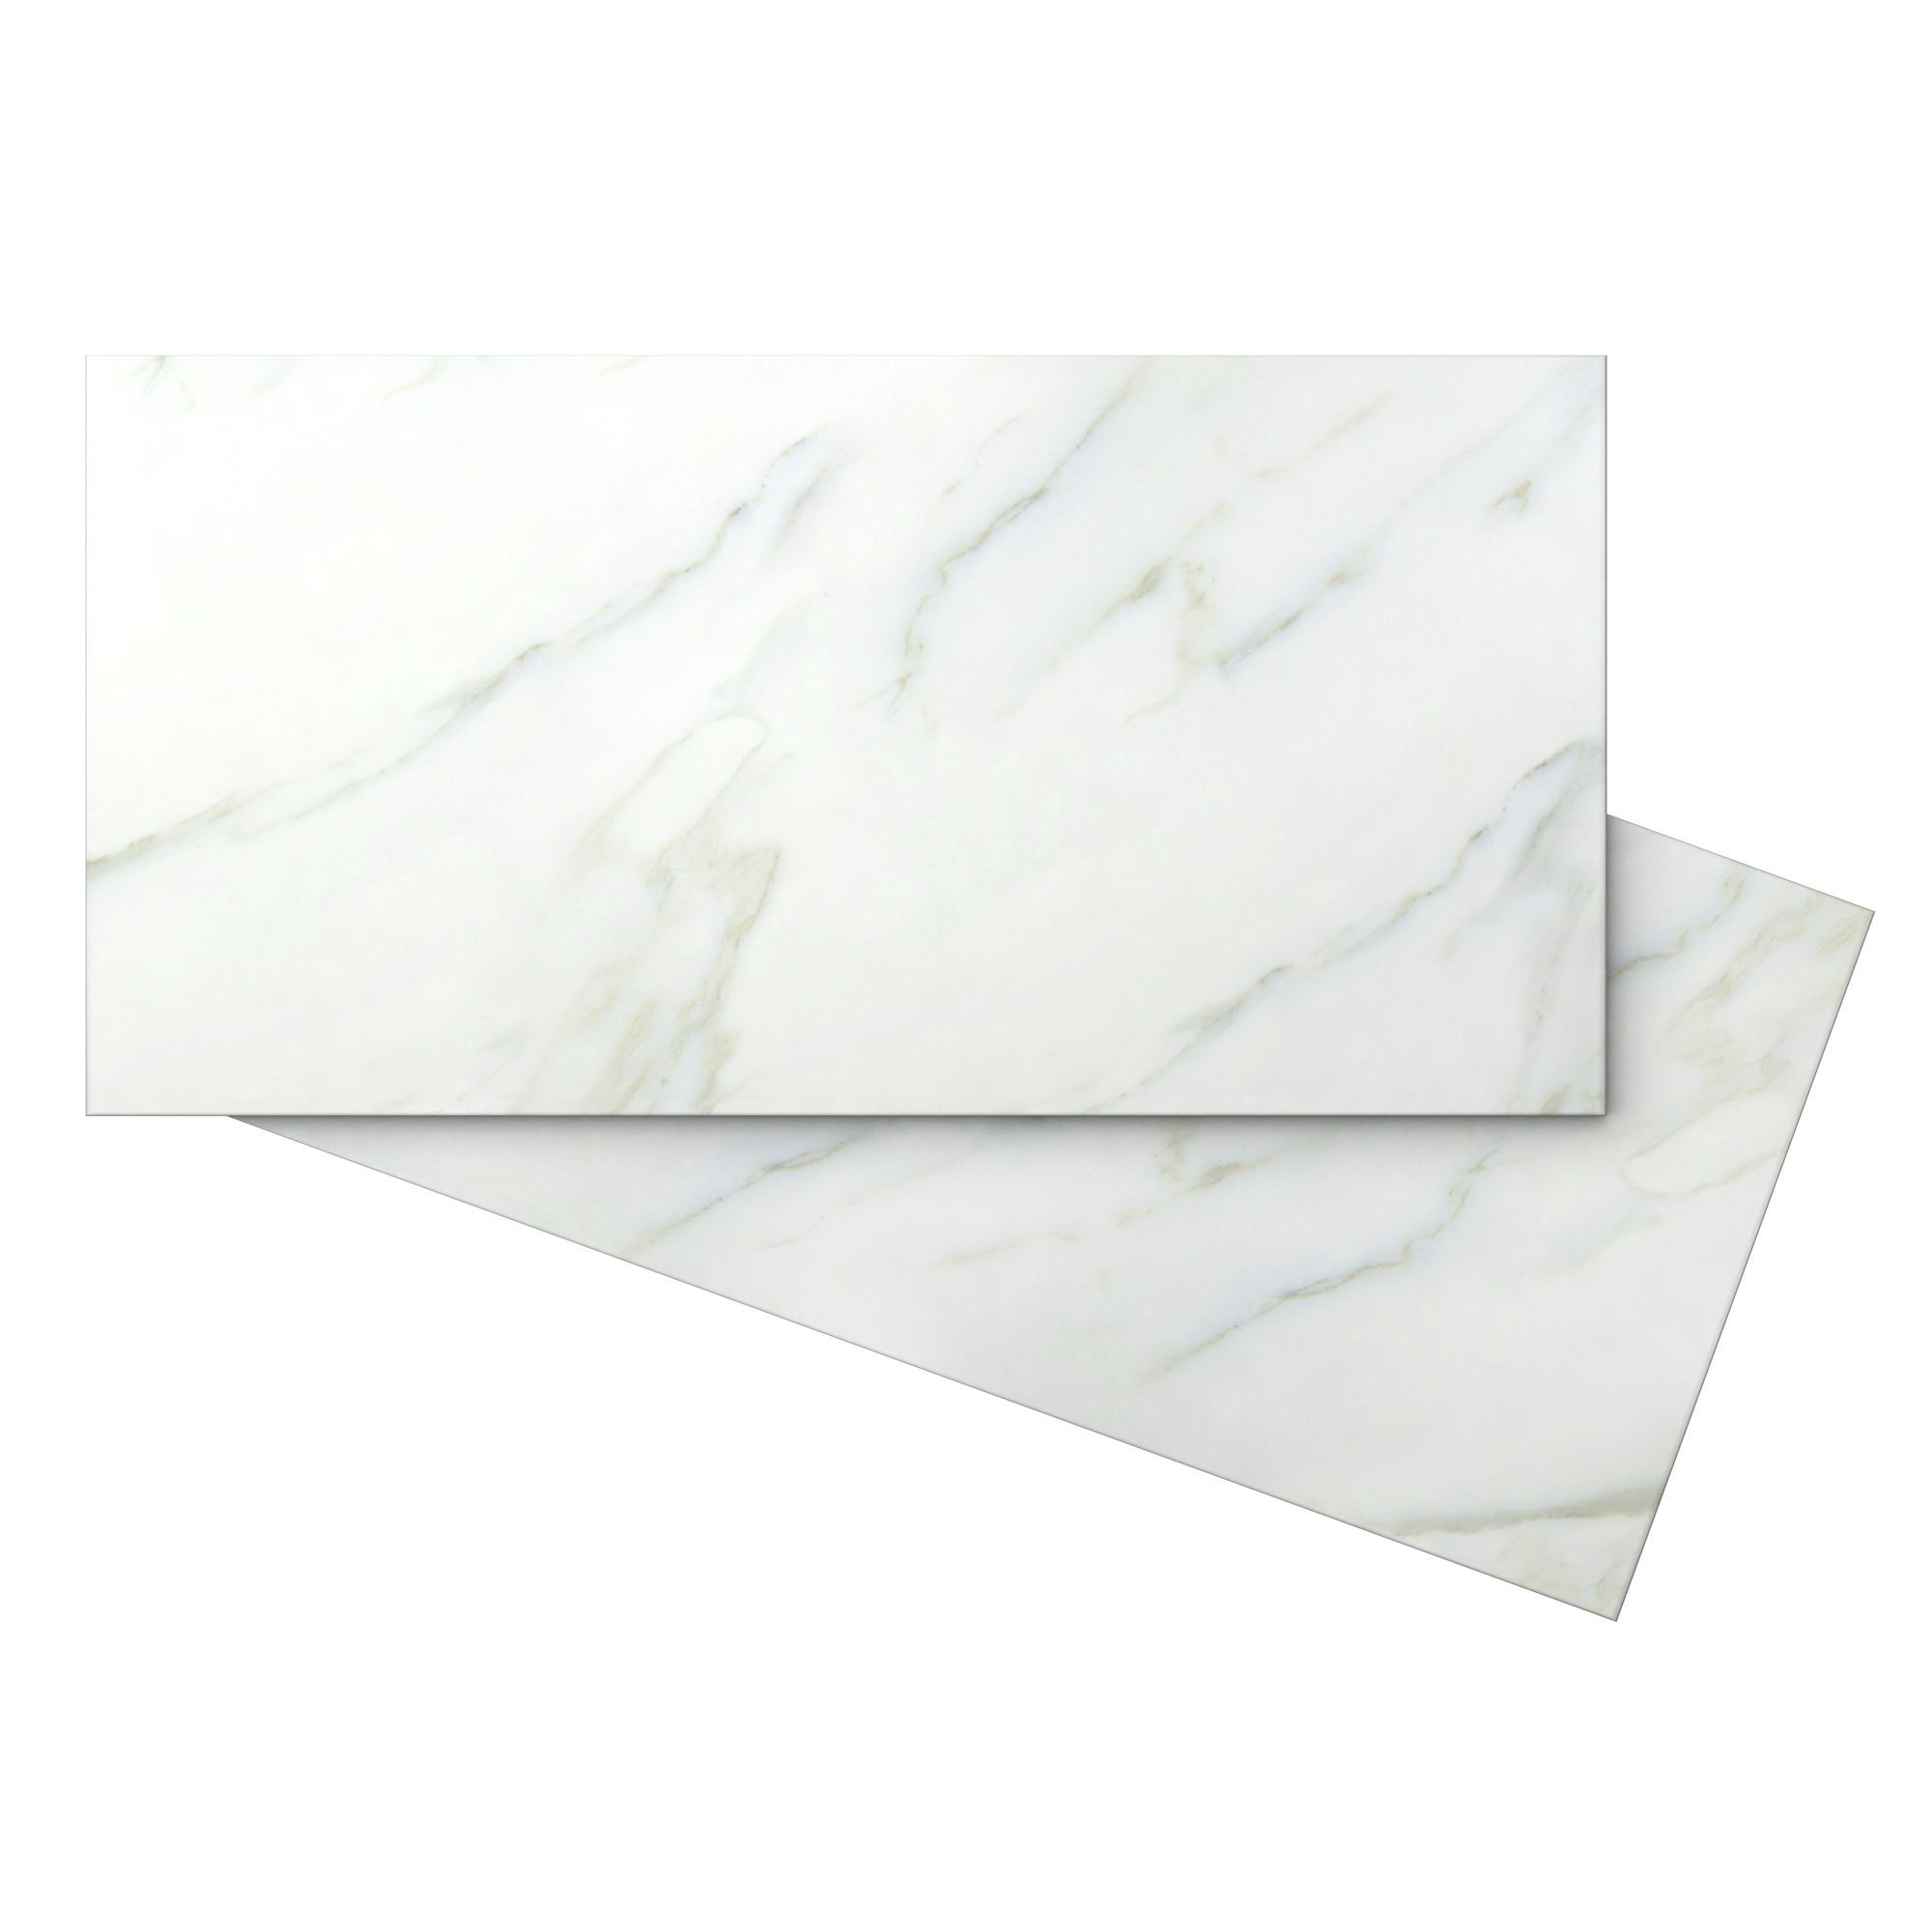 Aquila White Stone effect Carrara Ceramic Wall tile, Pack of 5, (L ...